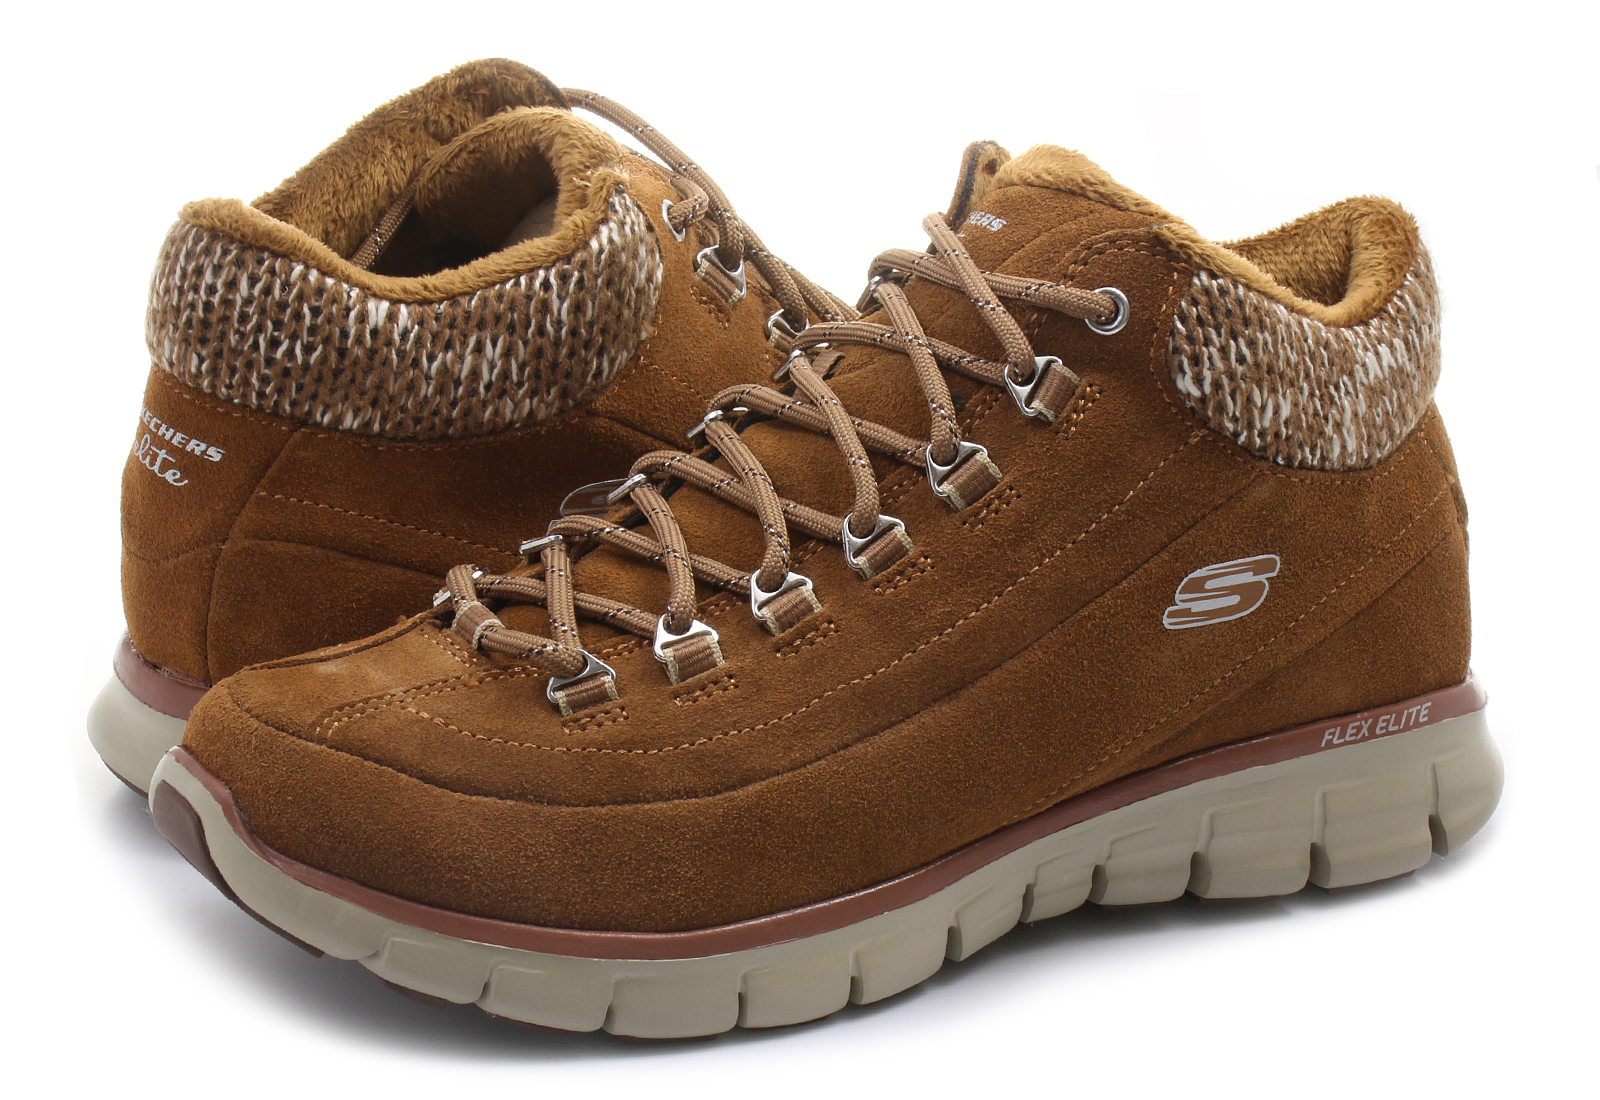 Skechers Cipő - Synergy - Arctic Winter - 11970-csnt - Office Shoes ... dc62bd06ce